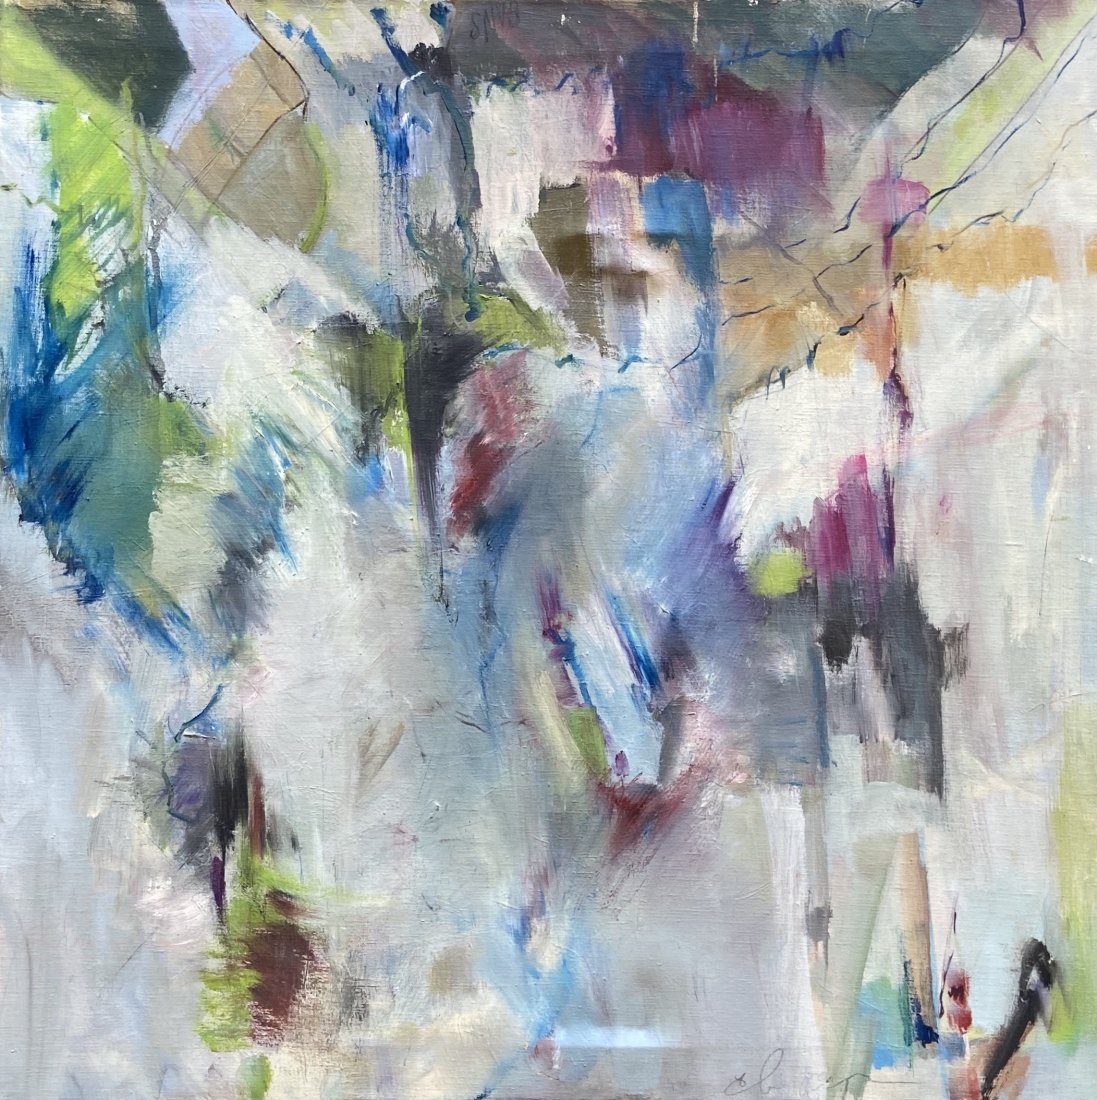 Abstract Expressionist Painting, Illegible Signature